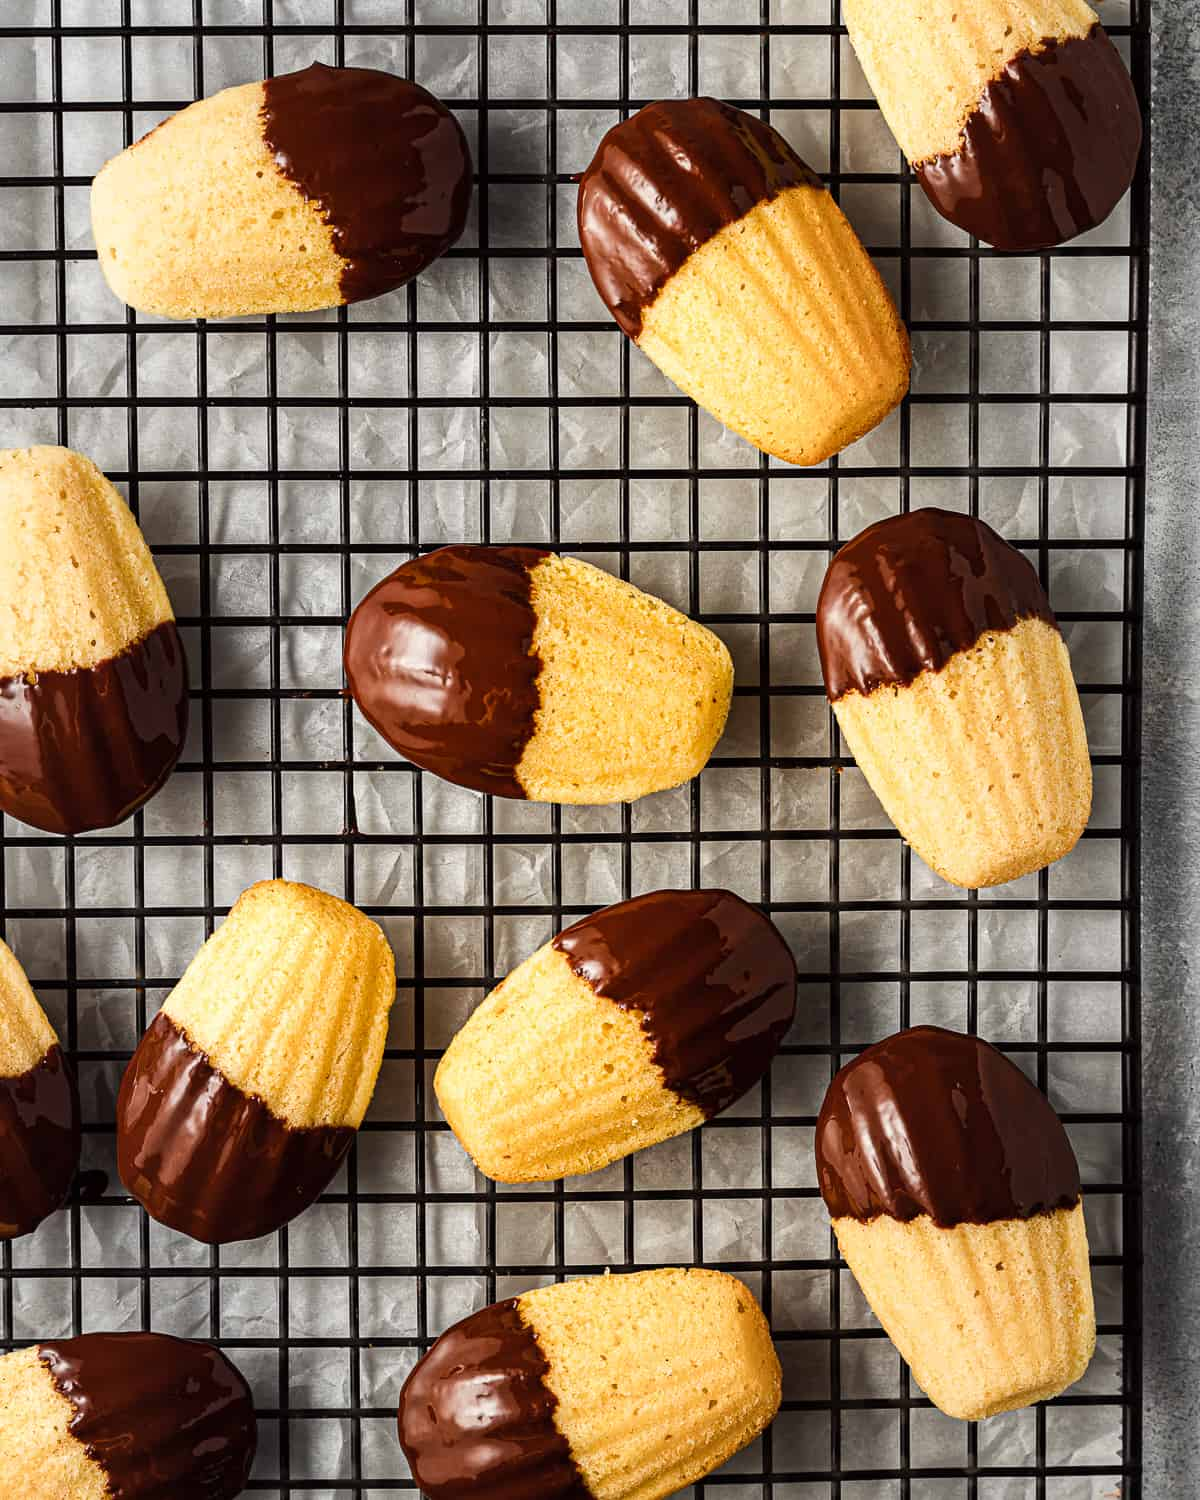 lemon madeleines dipped in chocolate